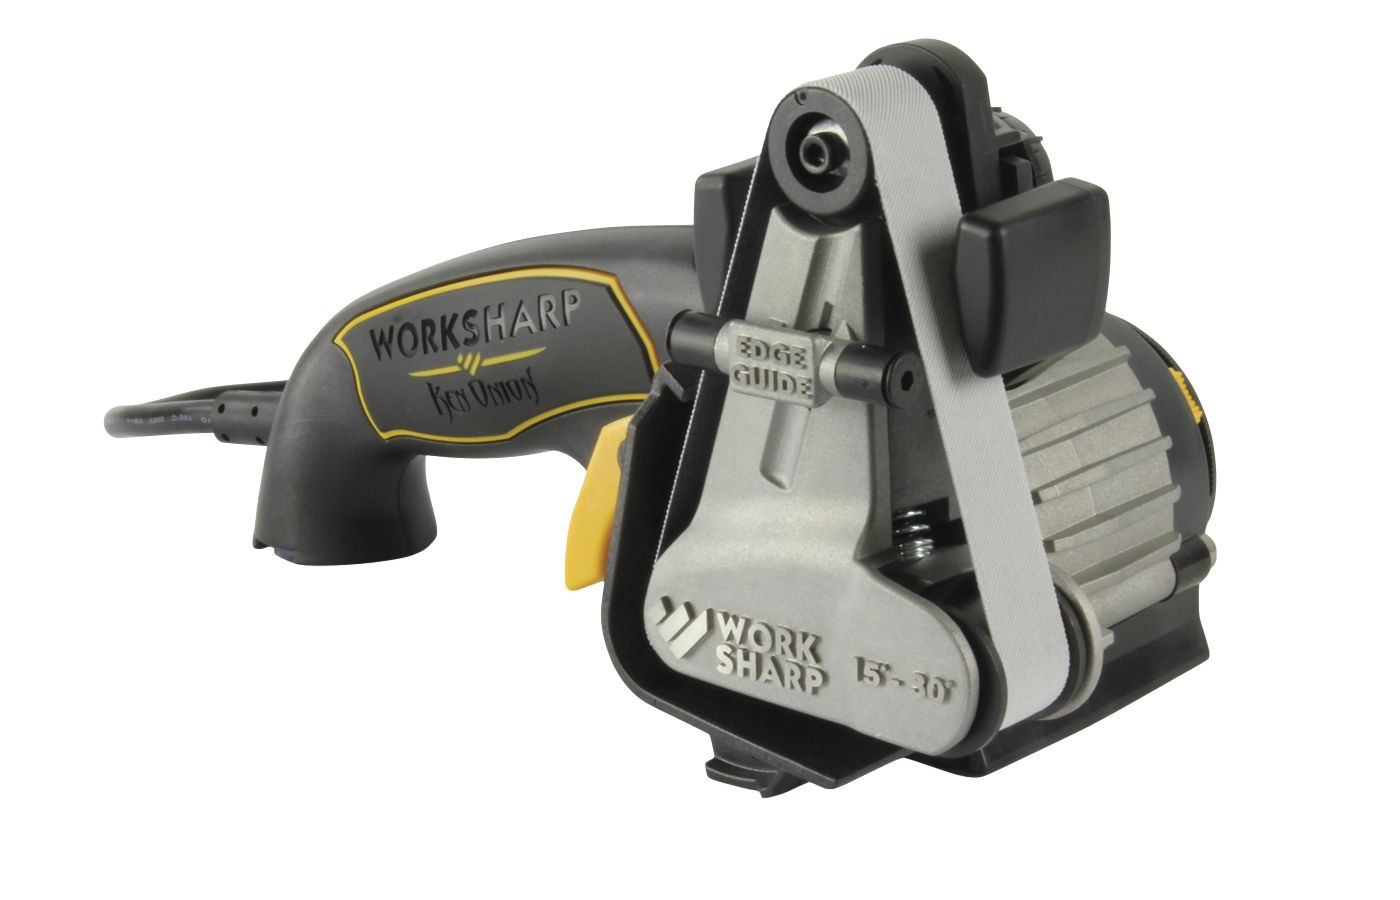 Work Sharp Electric Knife and Tool Sharpener – Ken Onion Edition